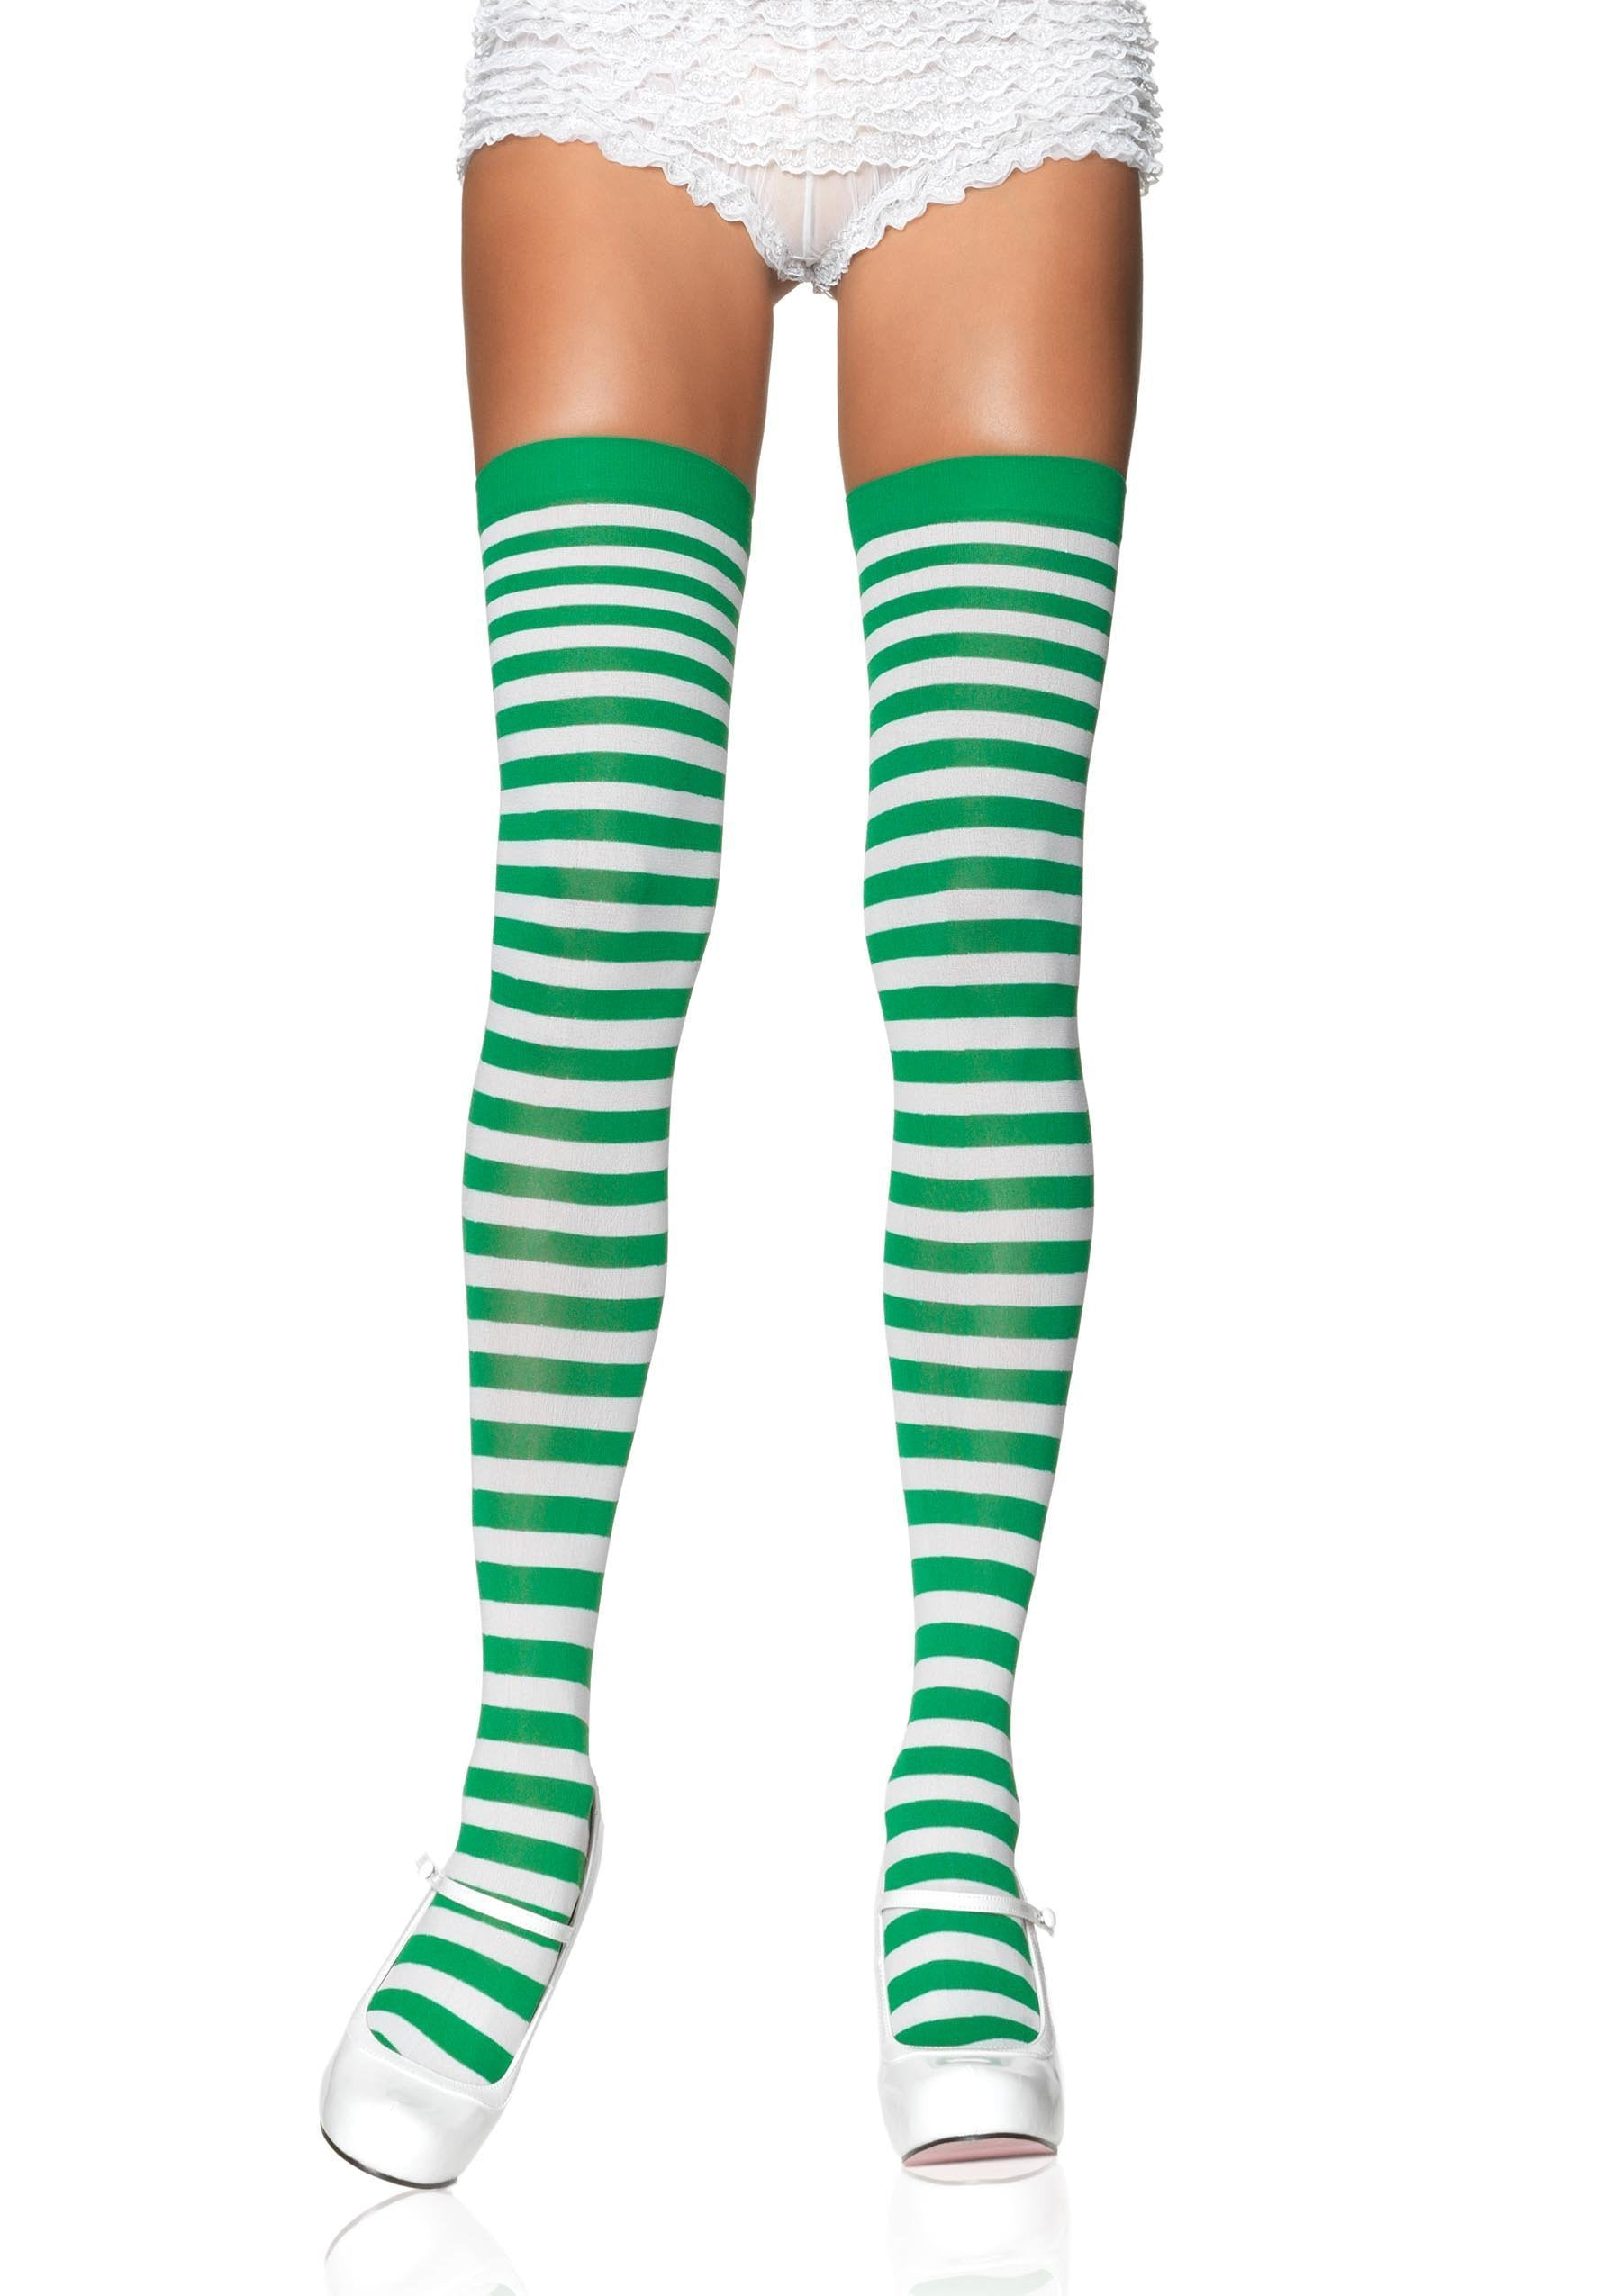 Leg Avenue Costume Accessories WHITE/KELLY / O/S Striped Thigh High Stockings